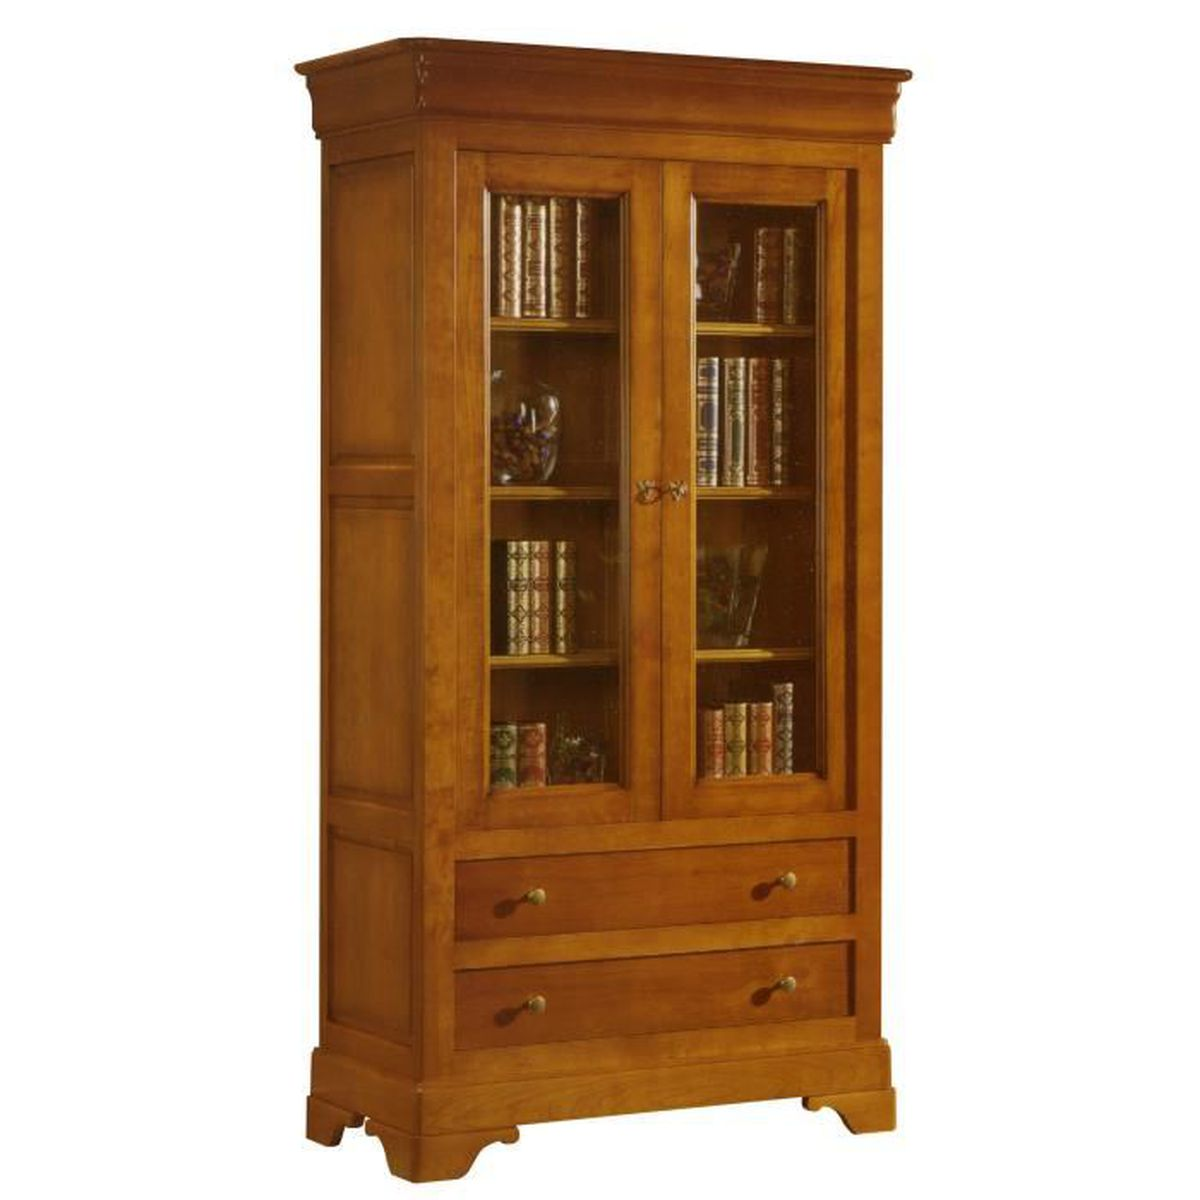 biblioth que 2 portes vitr es 2 grands tiroirs en ch ne massif achat vente biblioth que. Black Bedroom Furniture Sets. Home Design Ideas